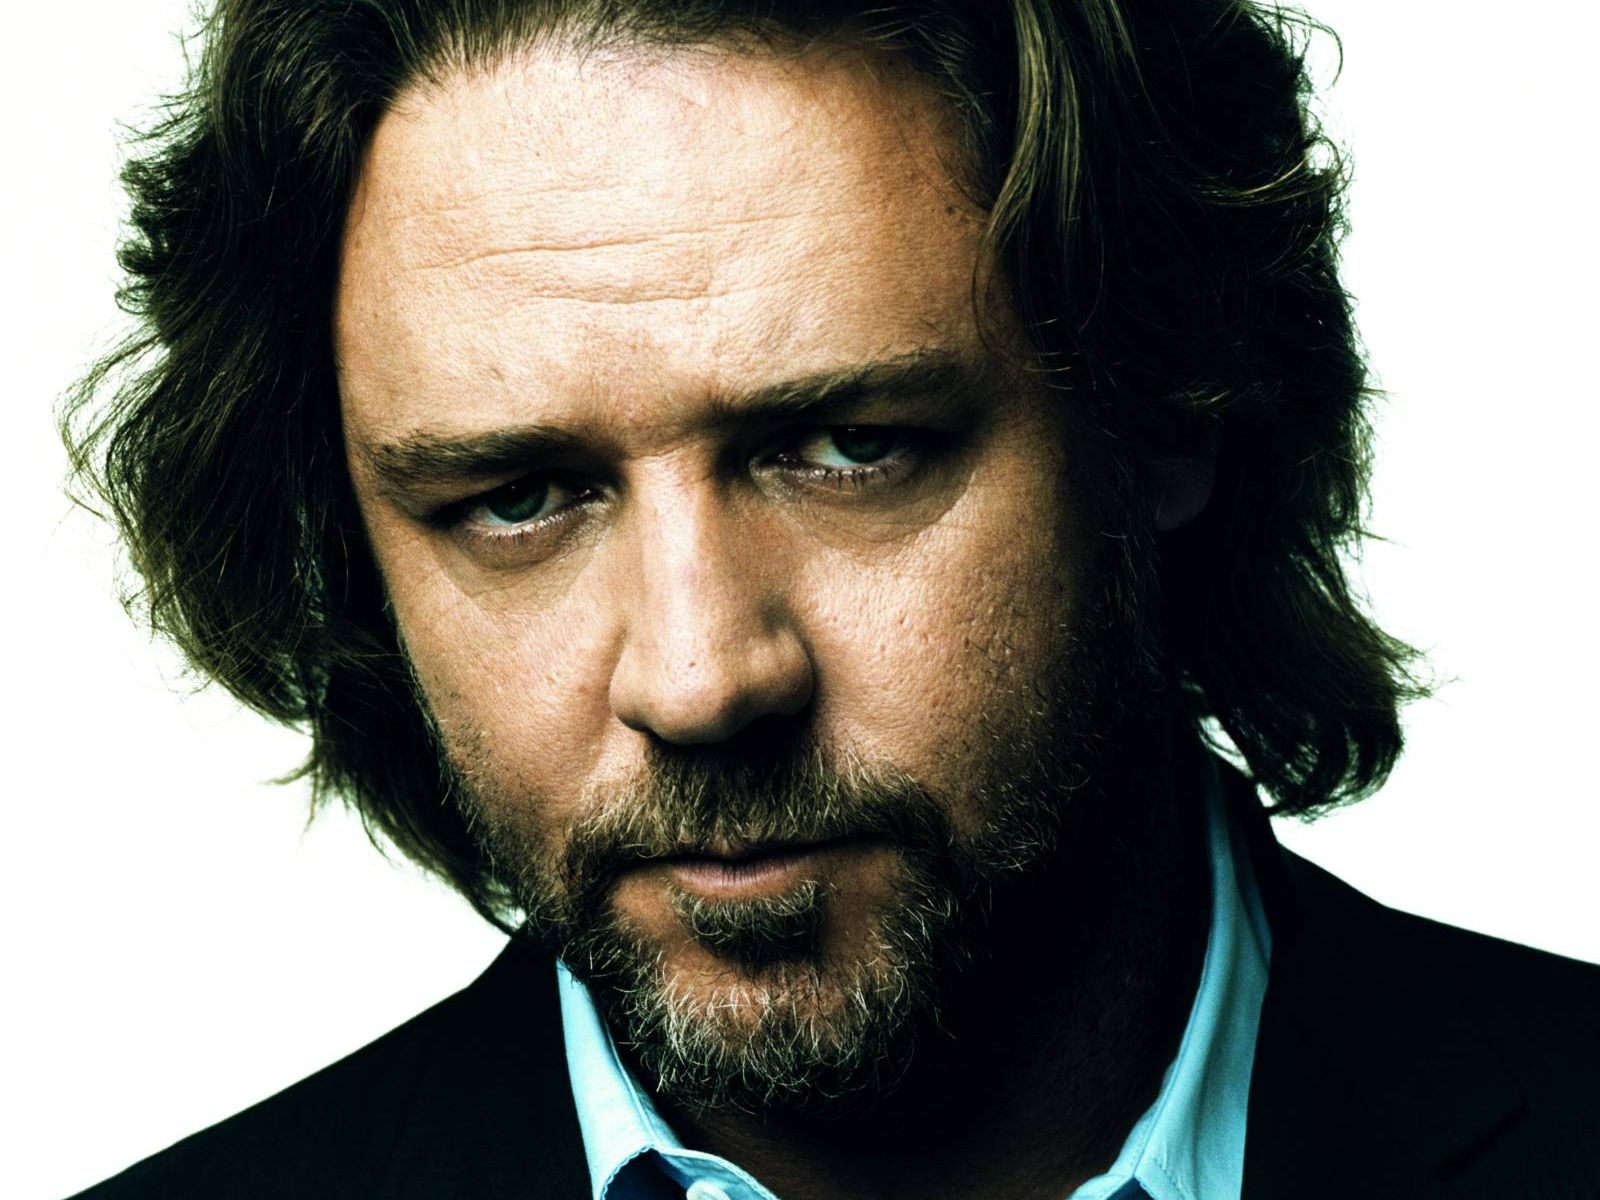 Russell Crowe Face Wallpapers 52377 1600x1200 px ~ HDWallSource